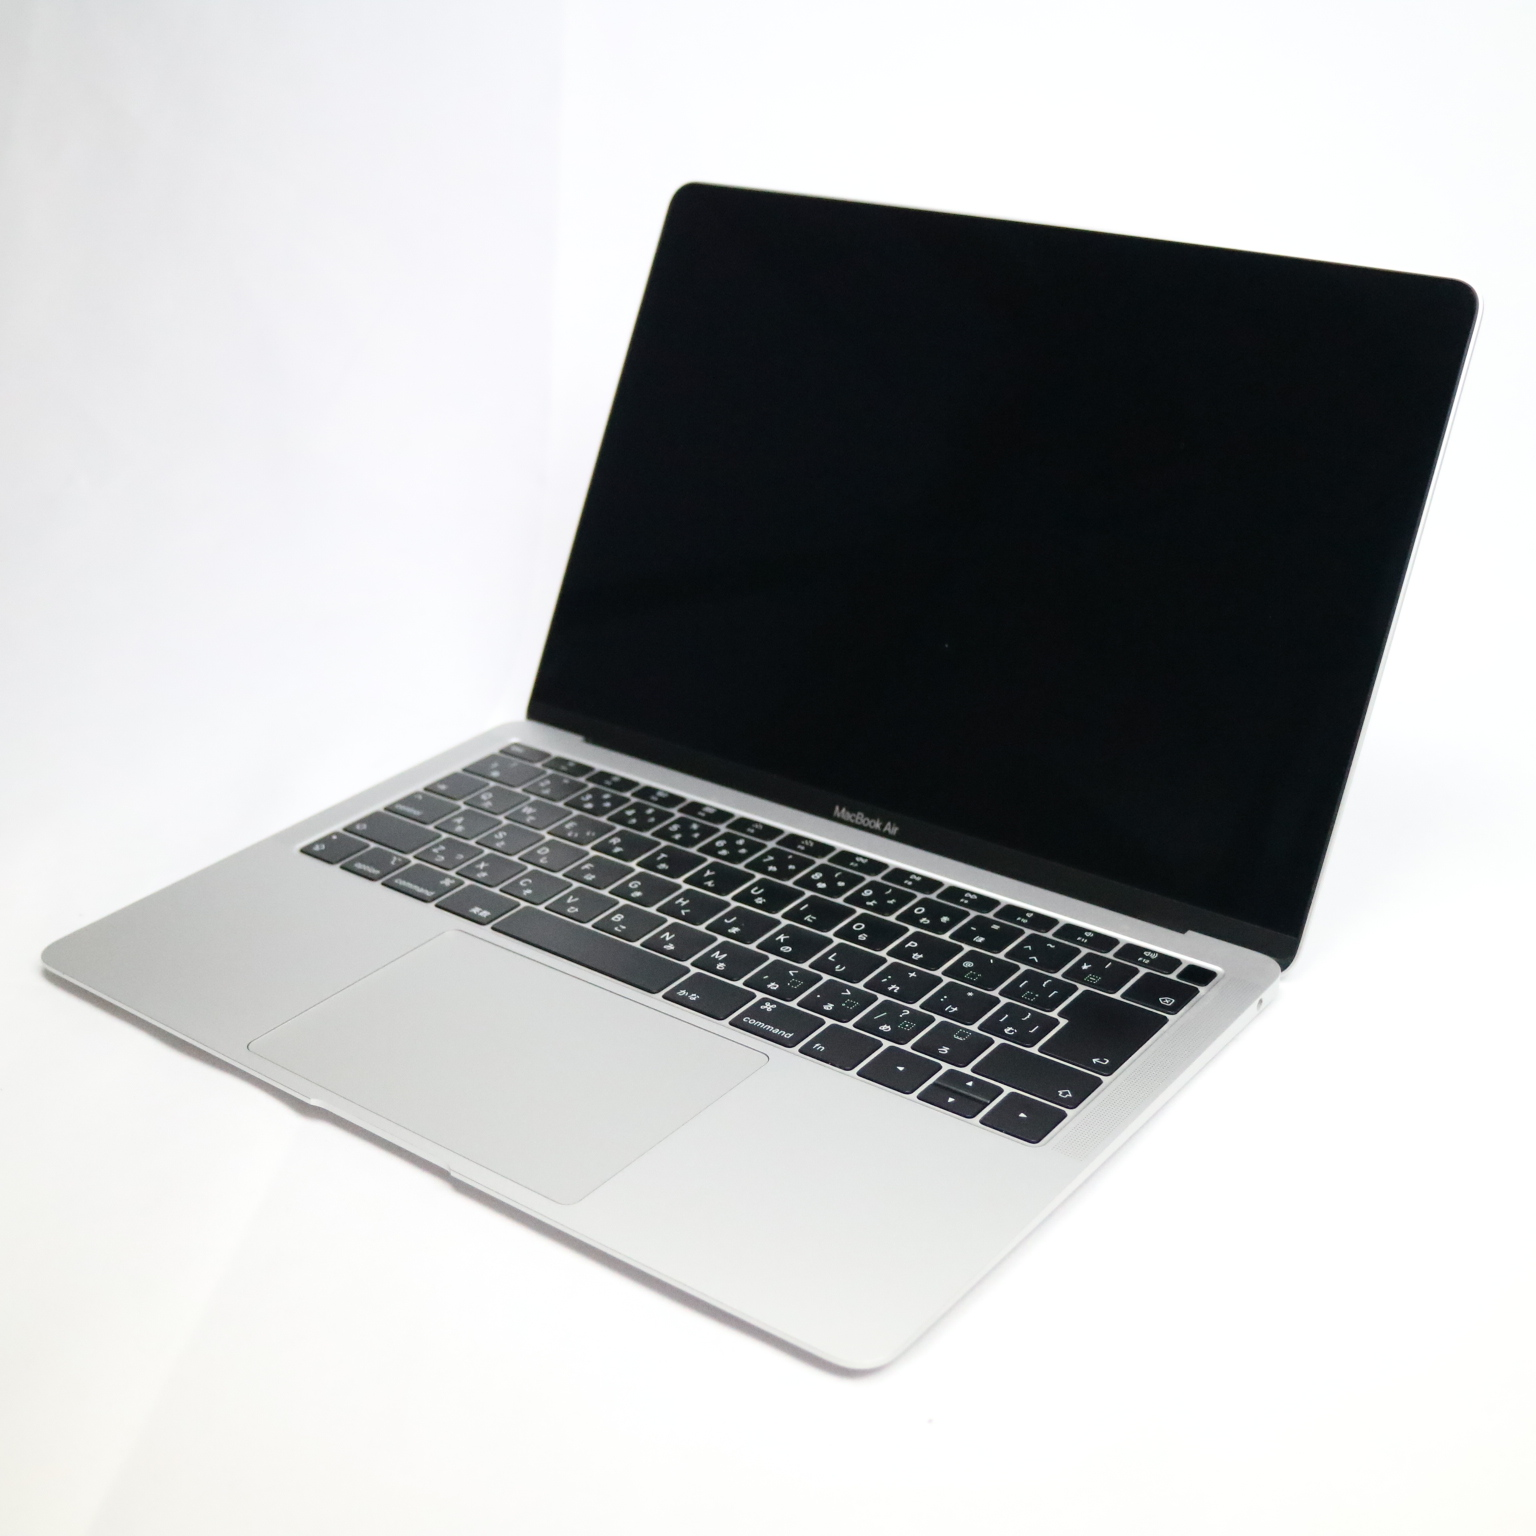 MacBook Air (Retina、13-inch、2018)/ 13.3インチ/ Core i5/ 1.6GHz/ 8GB/ SSD 256GB